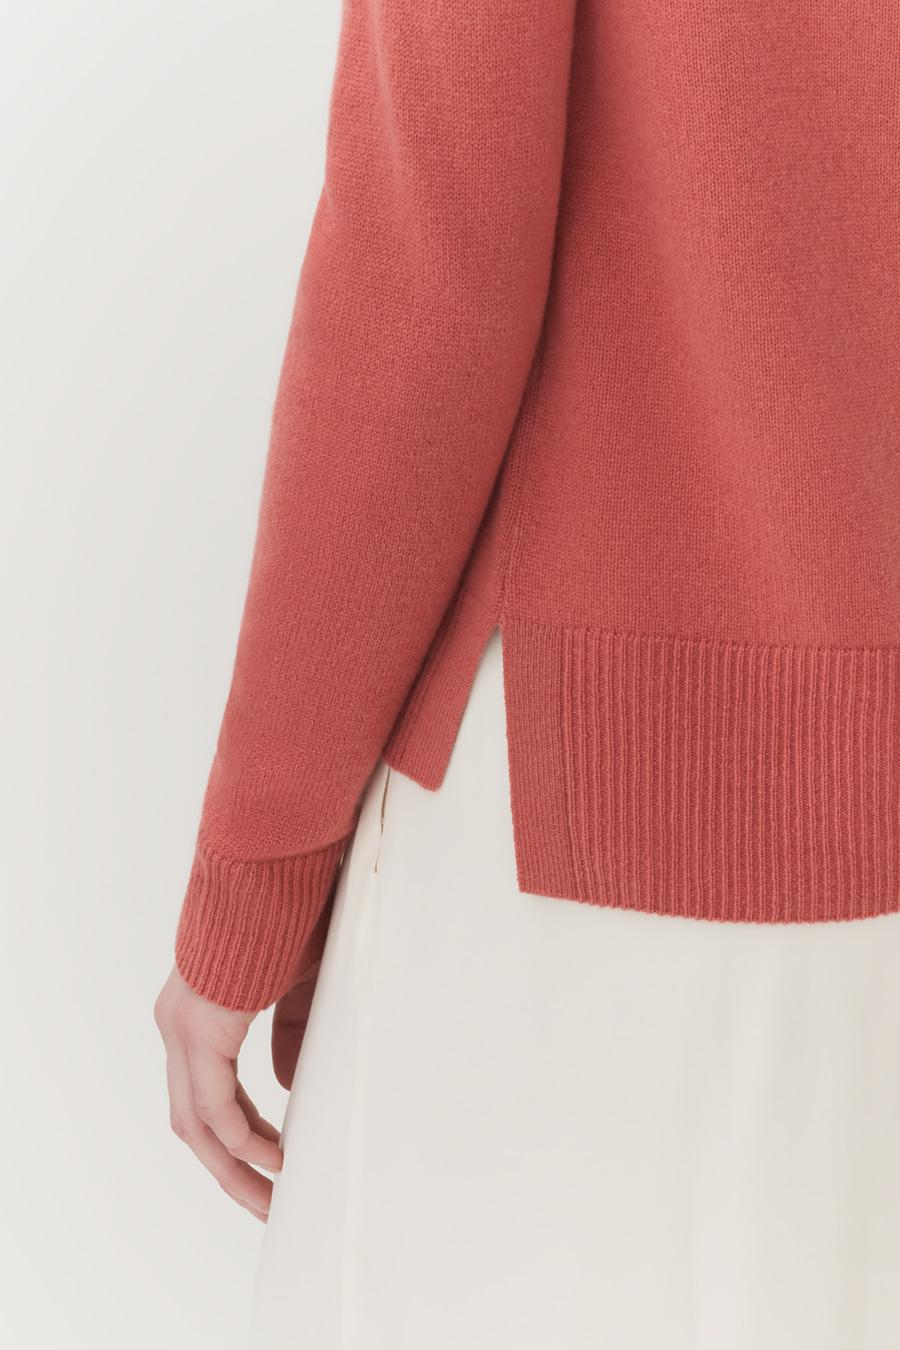 Women's Scoop Neck Sweater in Passion Fruit | Size: 3